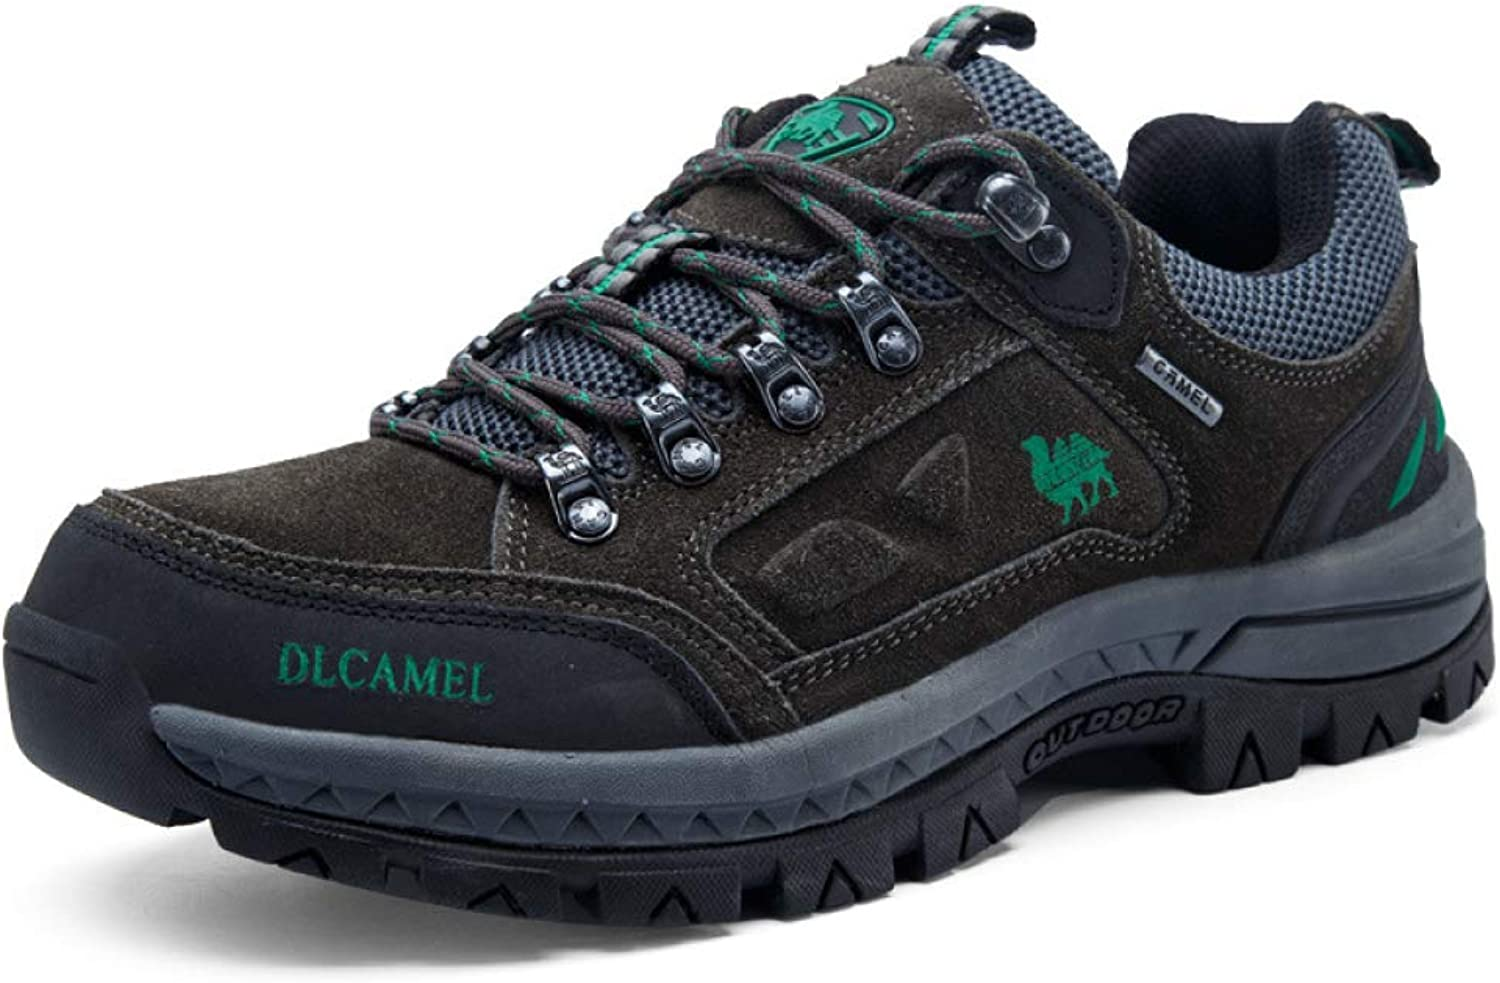 shoes Autumn Men's, Hiking, Outdoor Walking, Couples Sports